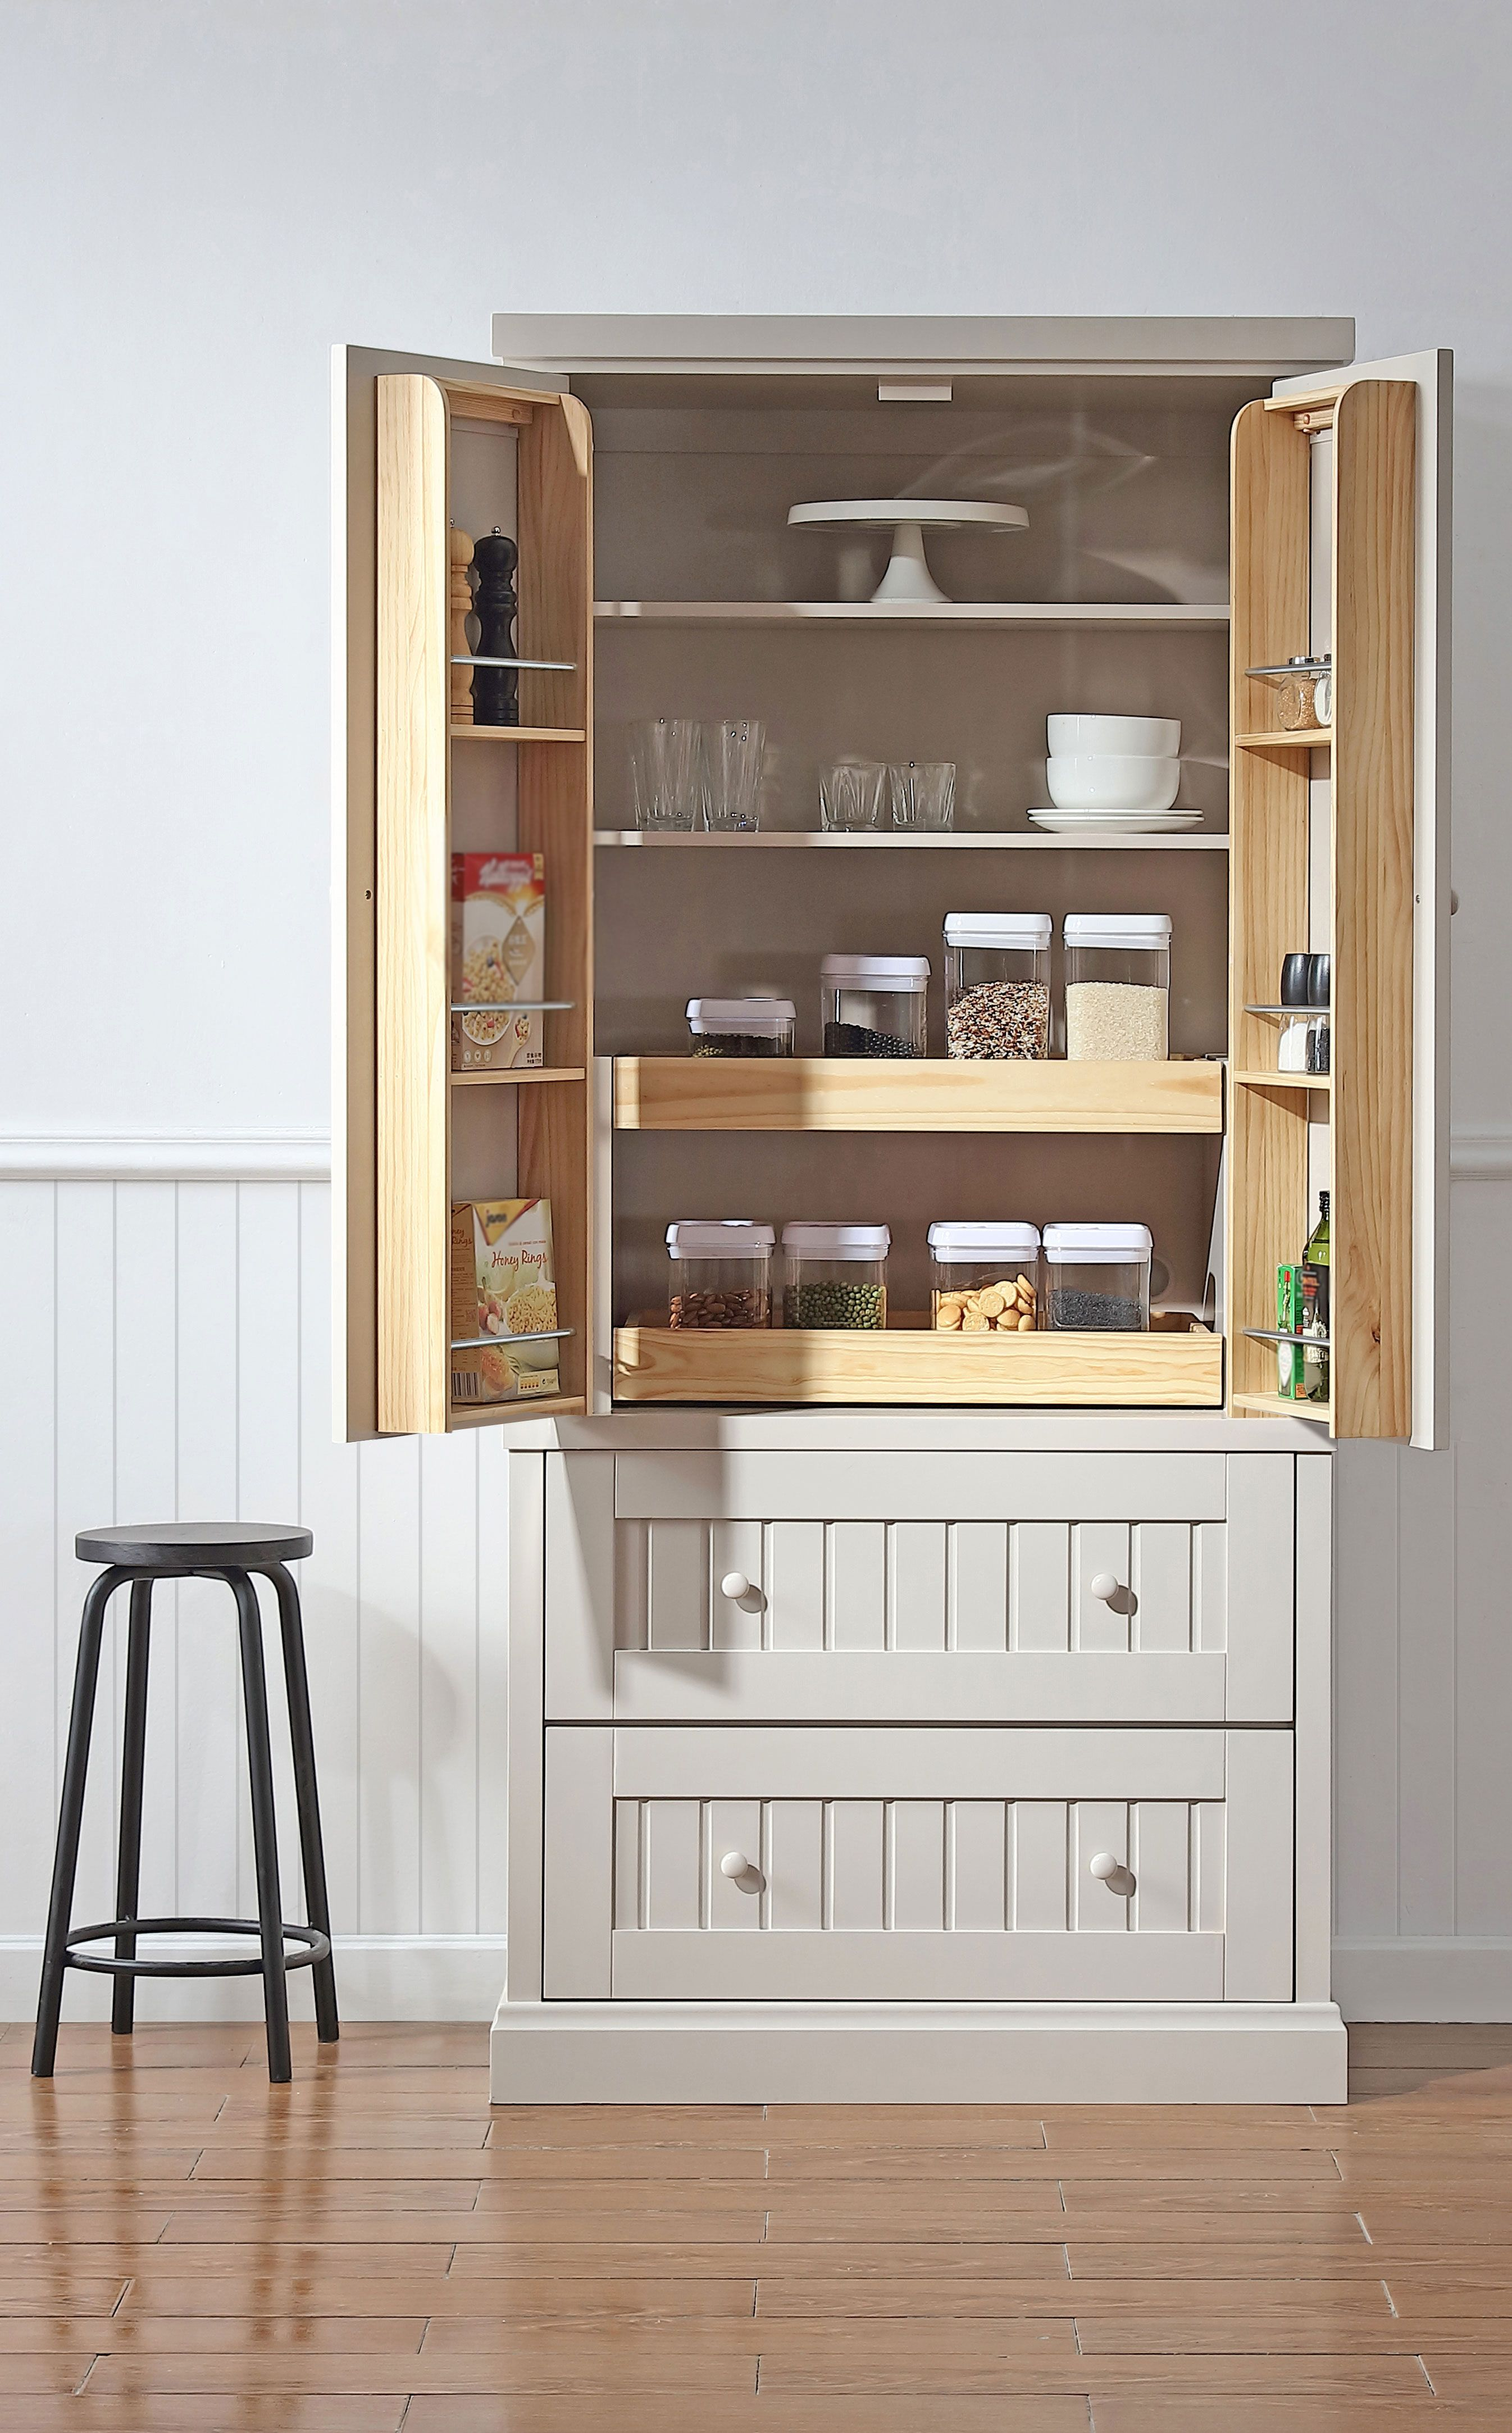 Create Extra Storage In Your Kitchen With The New Martha Stewart Living Free Standing Free Standing Pantry Kitchen Furniture Storage Stand Alone Kitchen Pantry